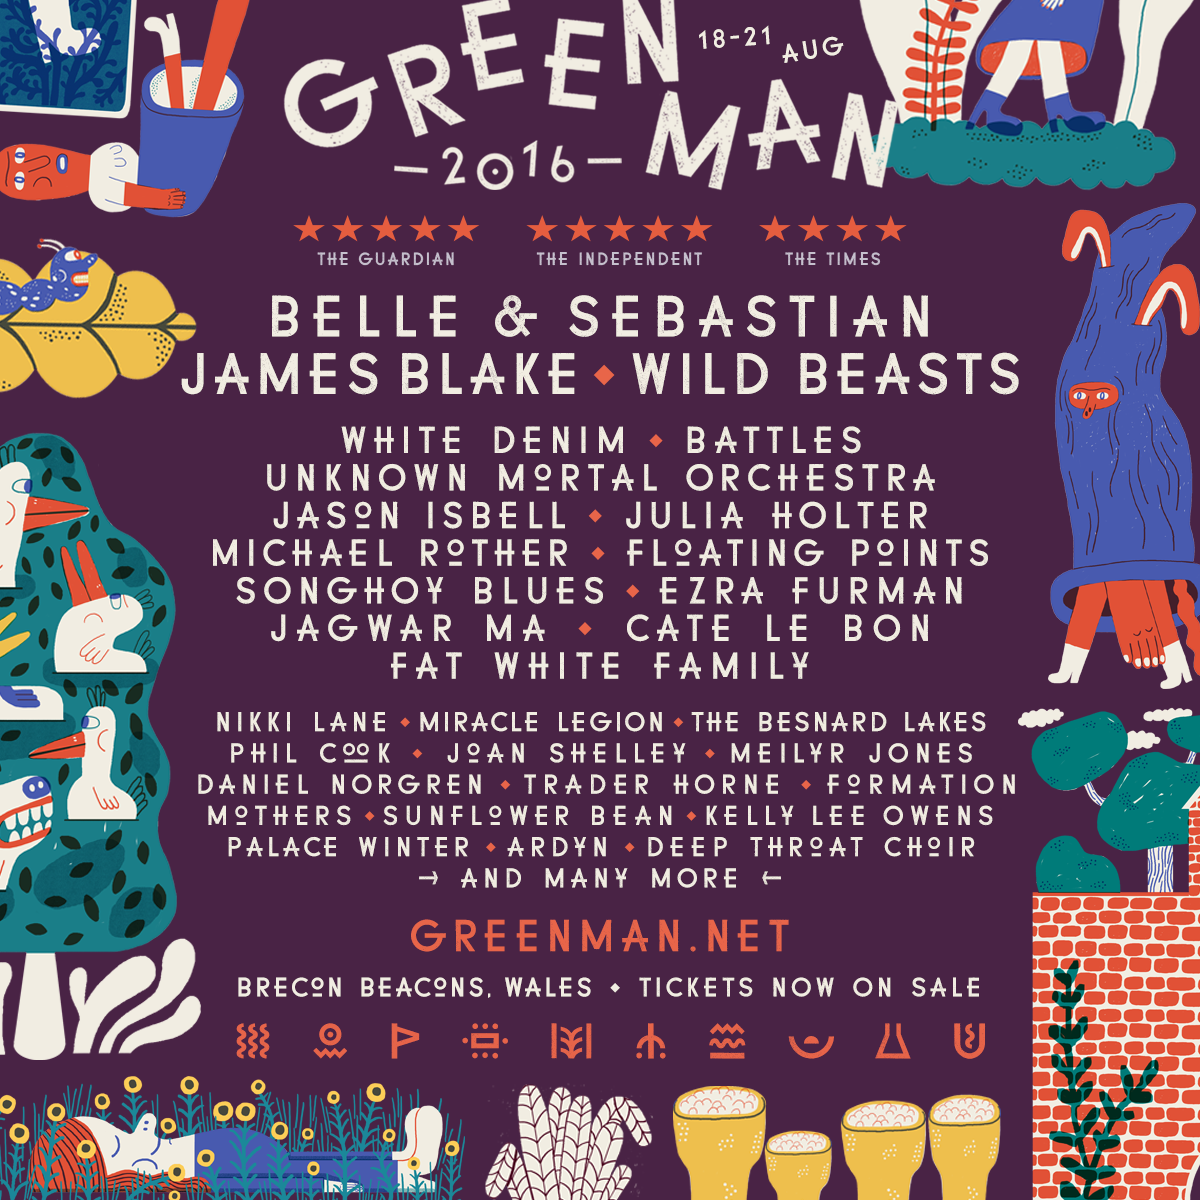 NEWS:  Belle & Sebastian, James Blake and Wild Beasts to headline Green Man 2016